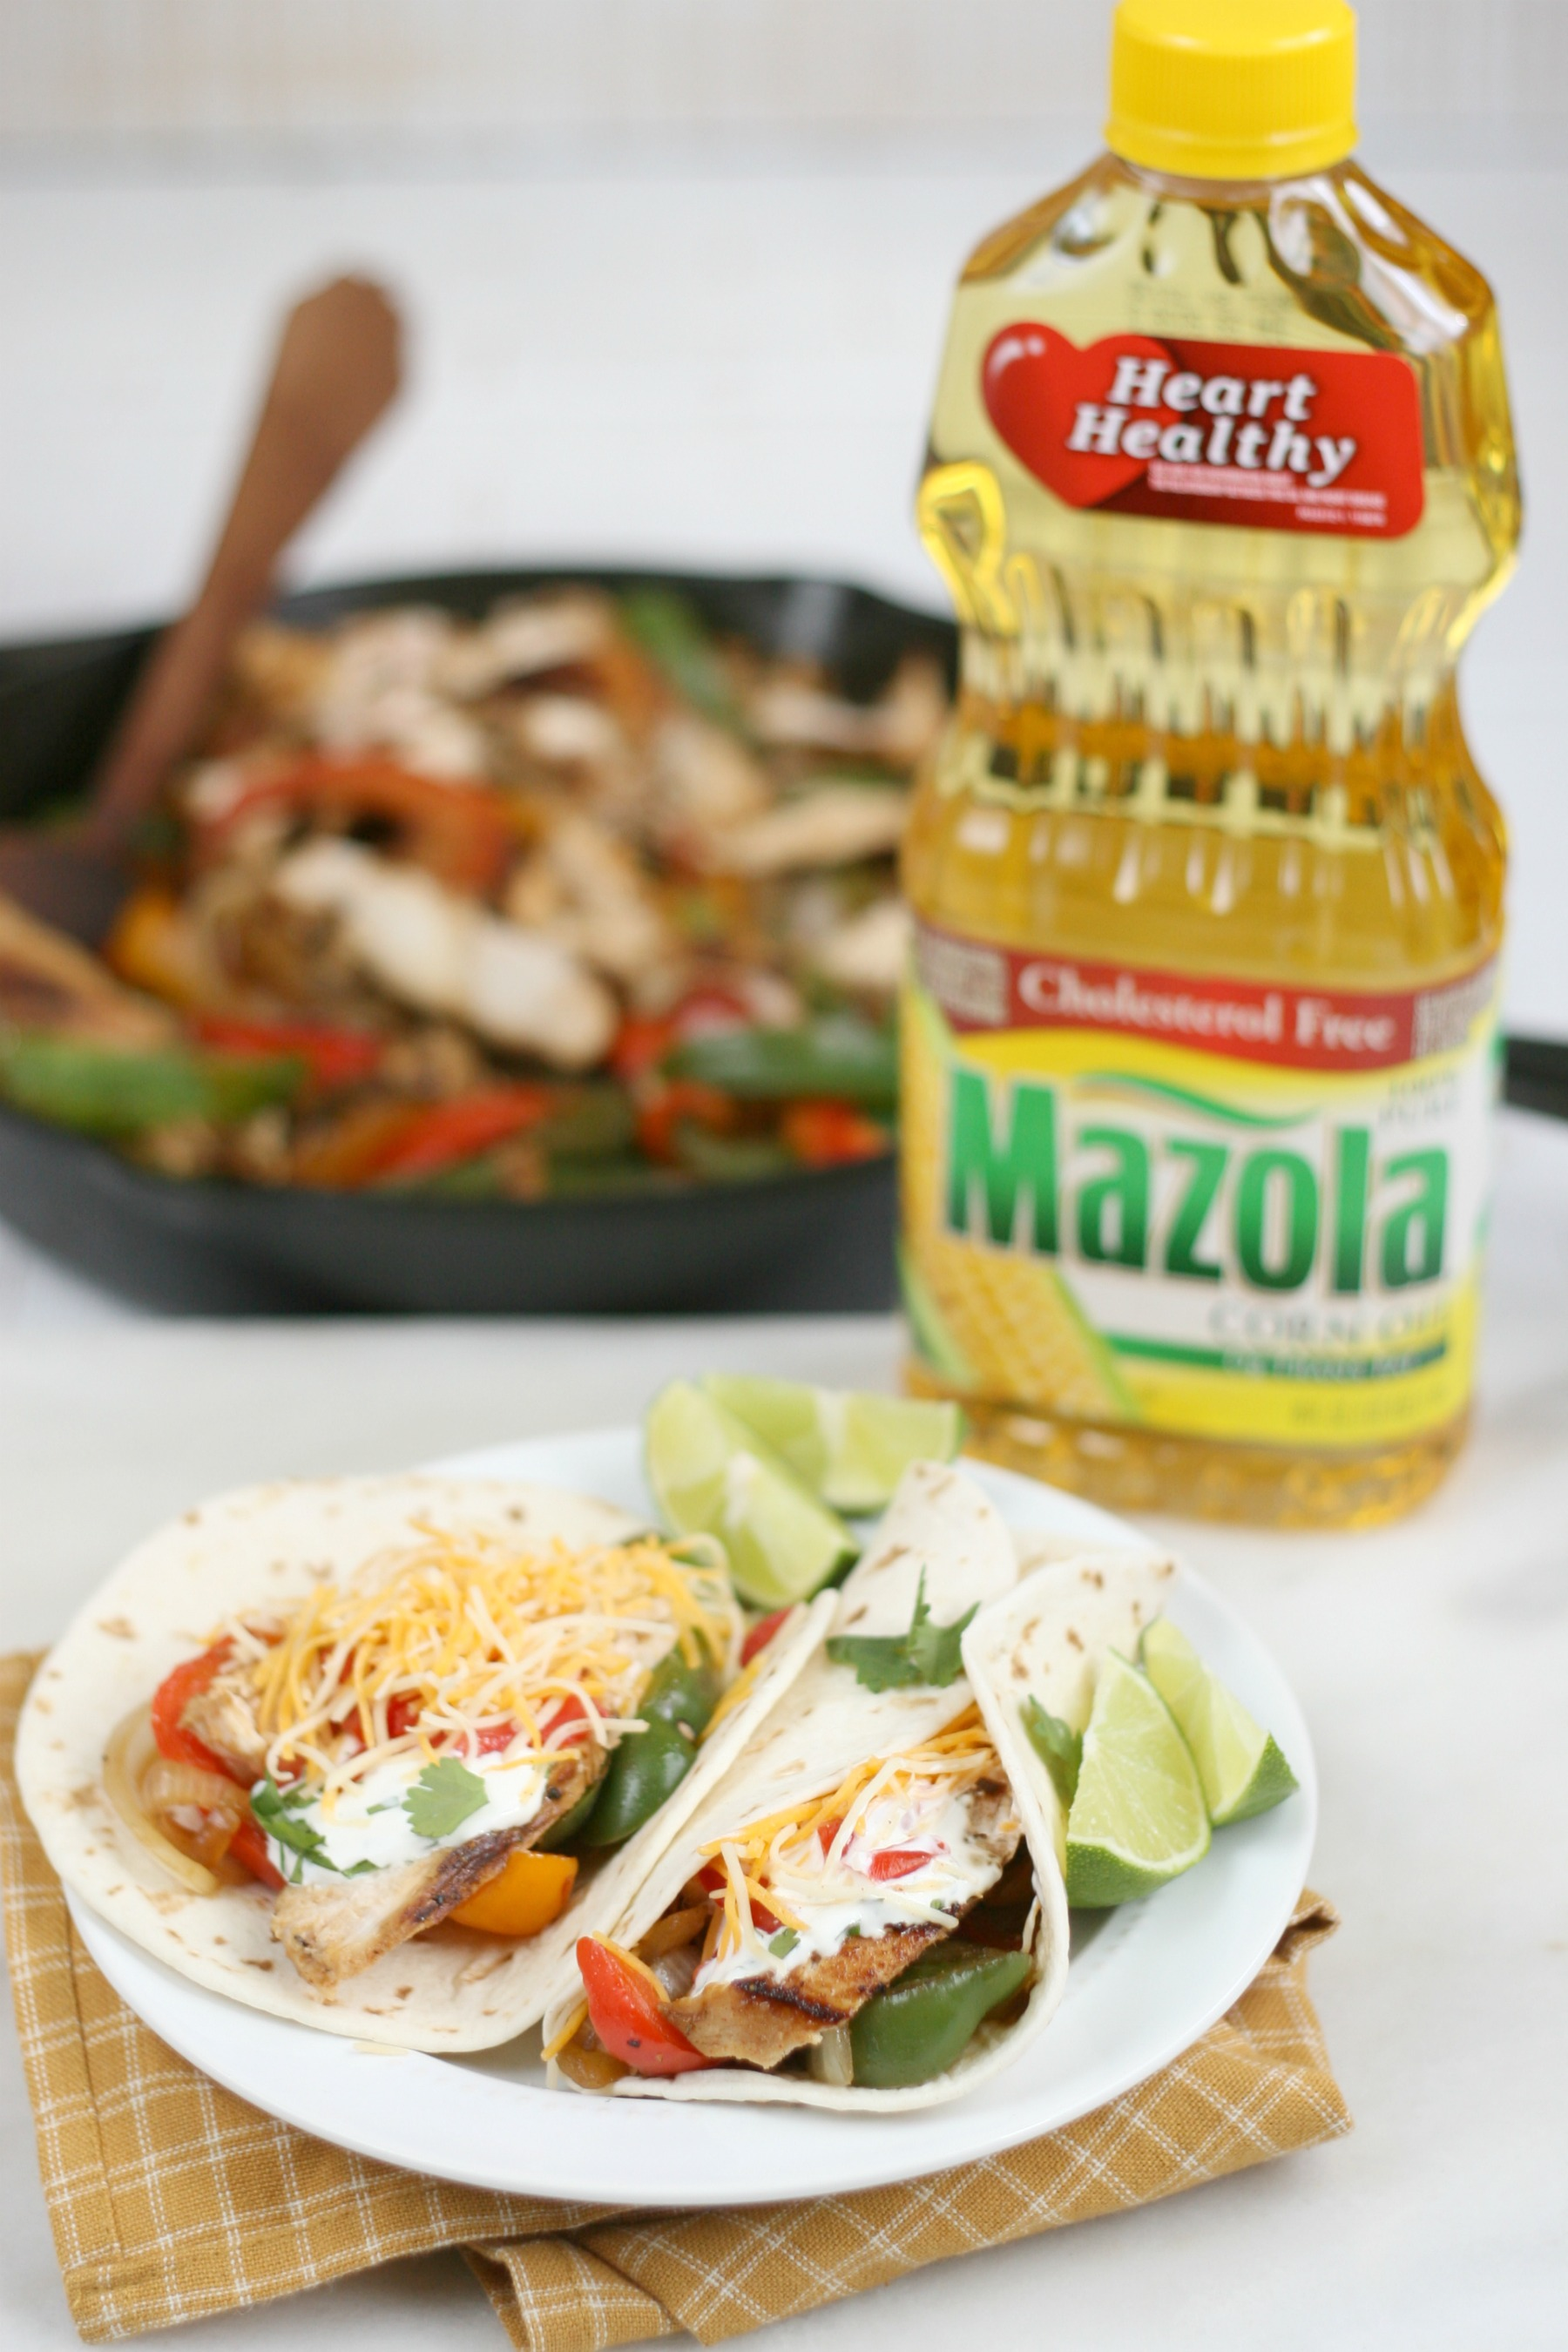 Bottle of Mazola oil with finished chicken fajitas on a white ceramic plate.